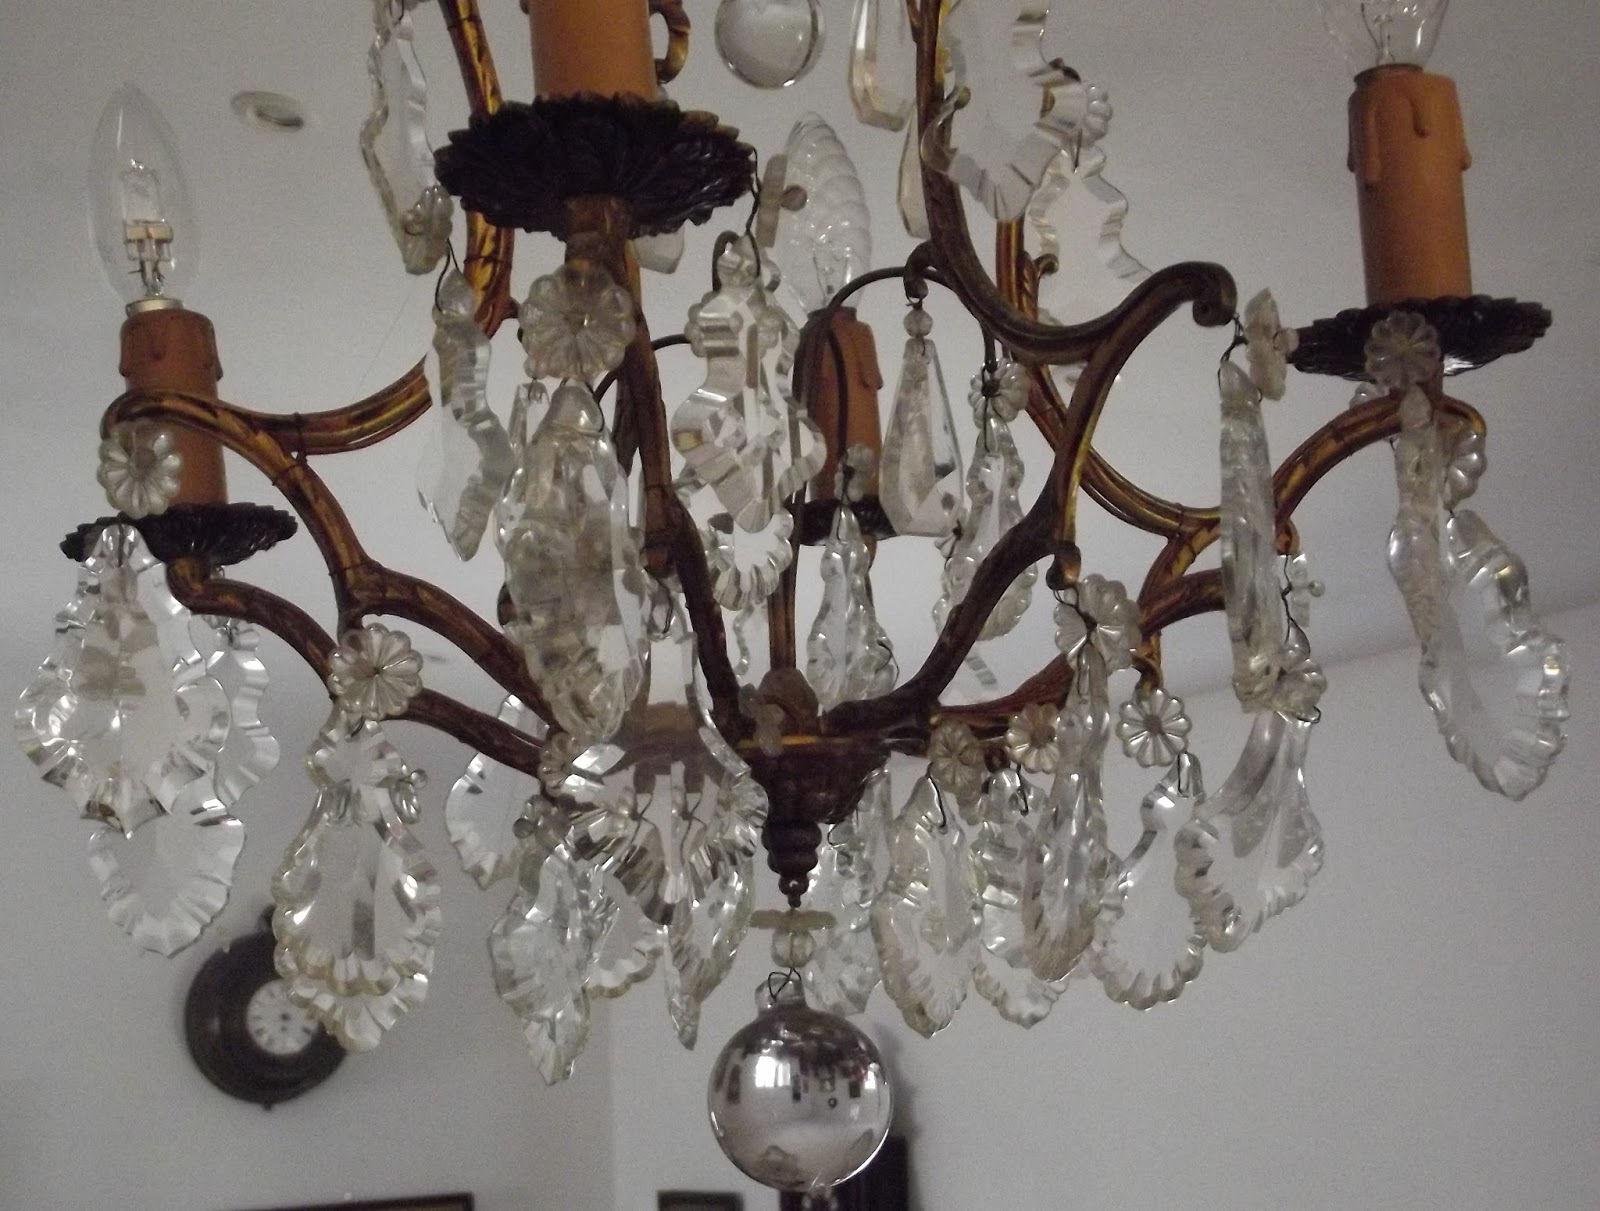 ancien lustre cage bronze pampille pendeloque plafonnir suspension cristal verre ebay. Black Bedroom Furniture Sets. Home Design Ideas